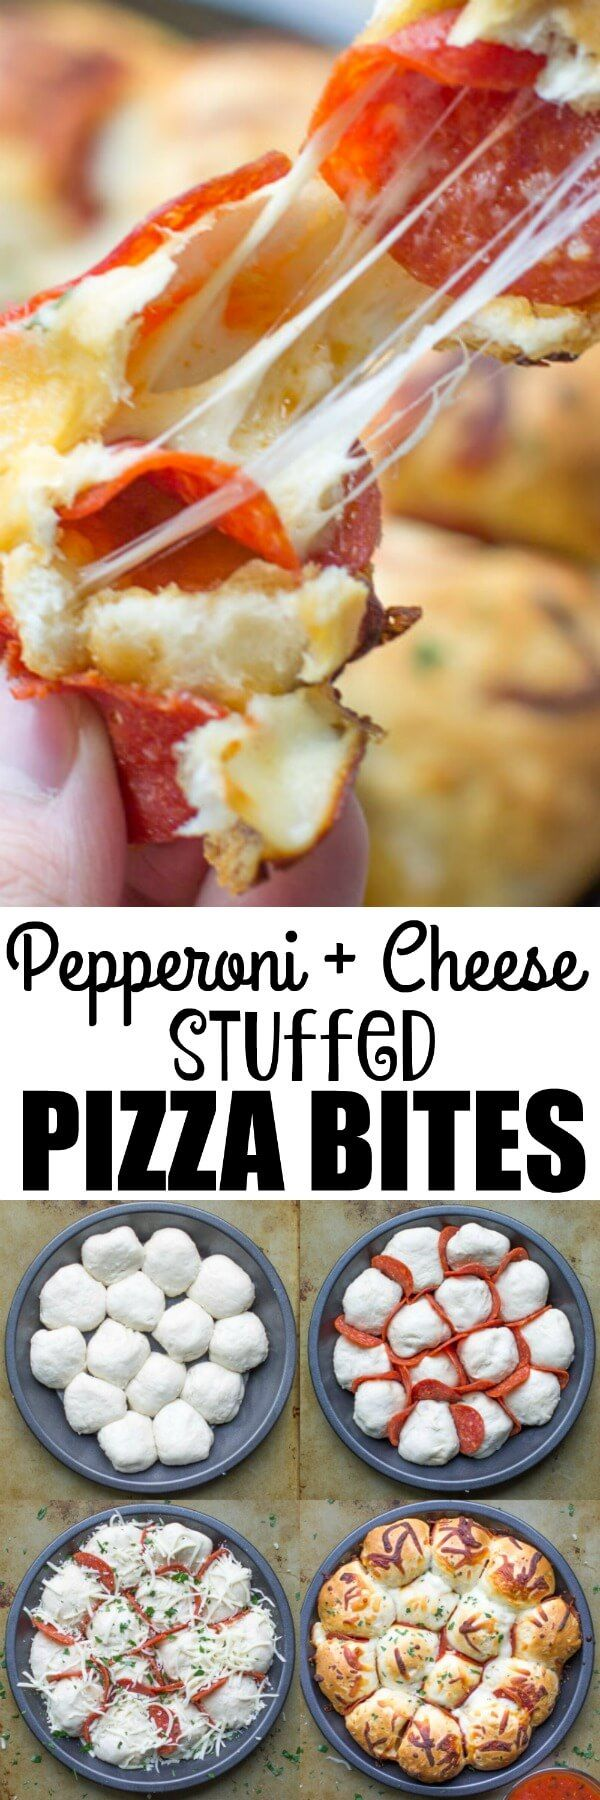 Skip the pizza delivery! Enjoy these easy, cheesy pepperoni Pizza Bites hot and fresh from the oven. You'll want to double the batch! via @culinaryhill